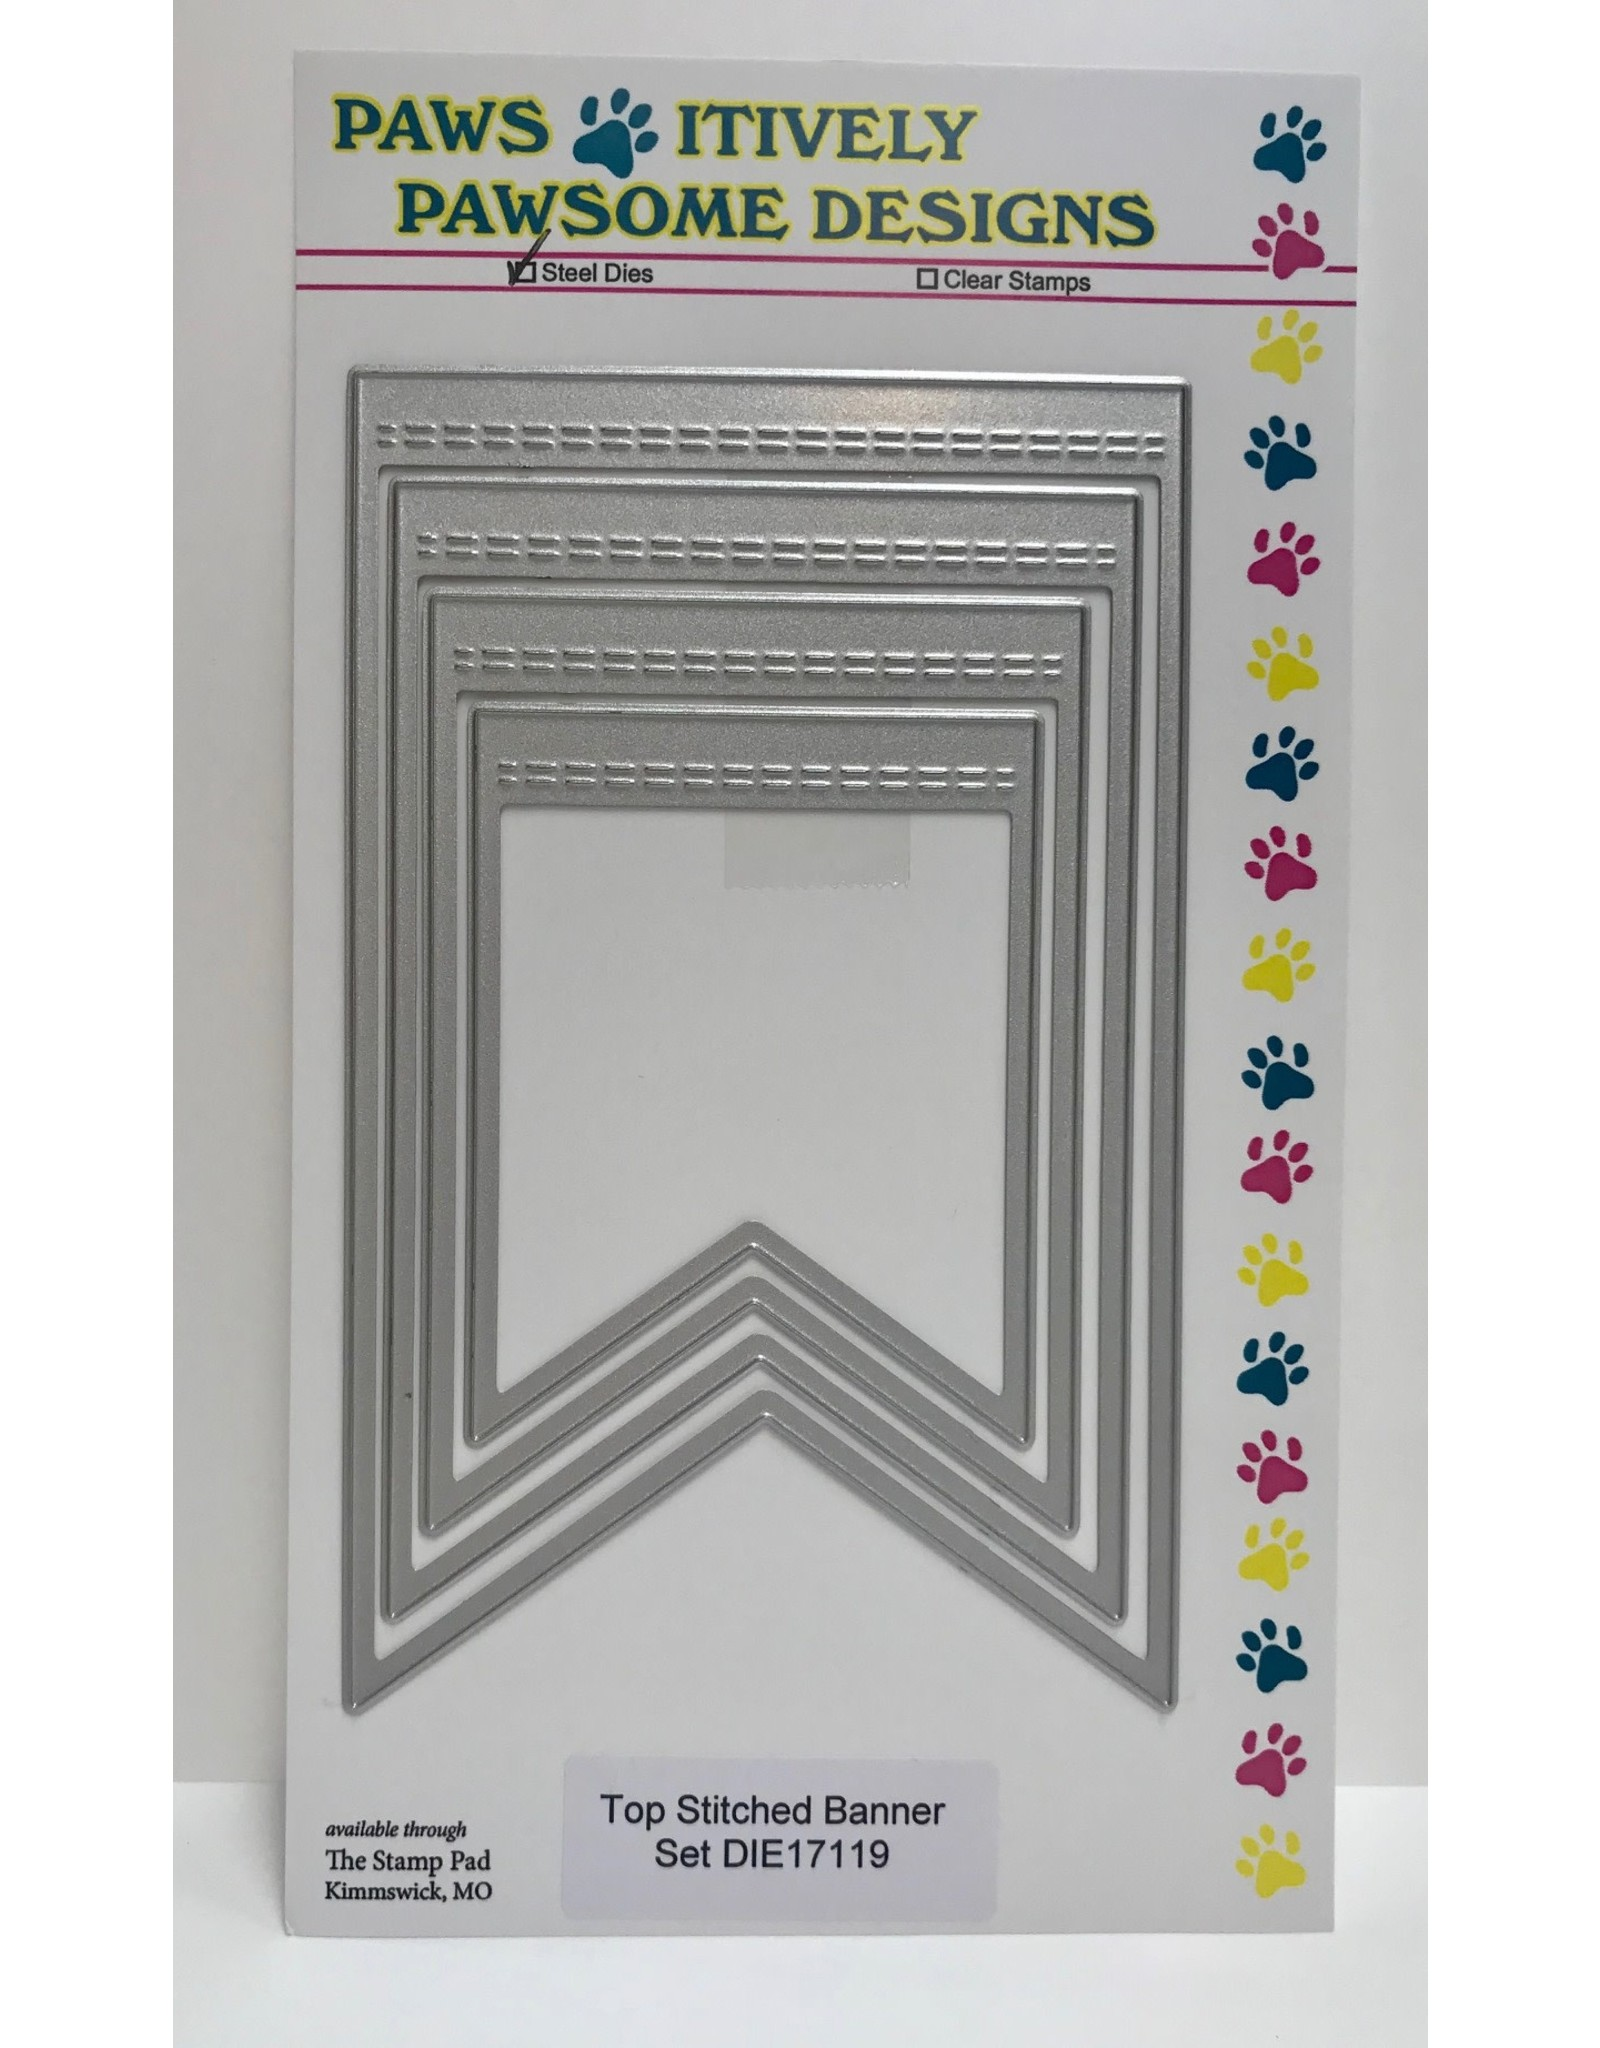 Paws-Itively Pawsome Designs Top Stitched Banner Set - Die